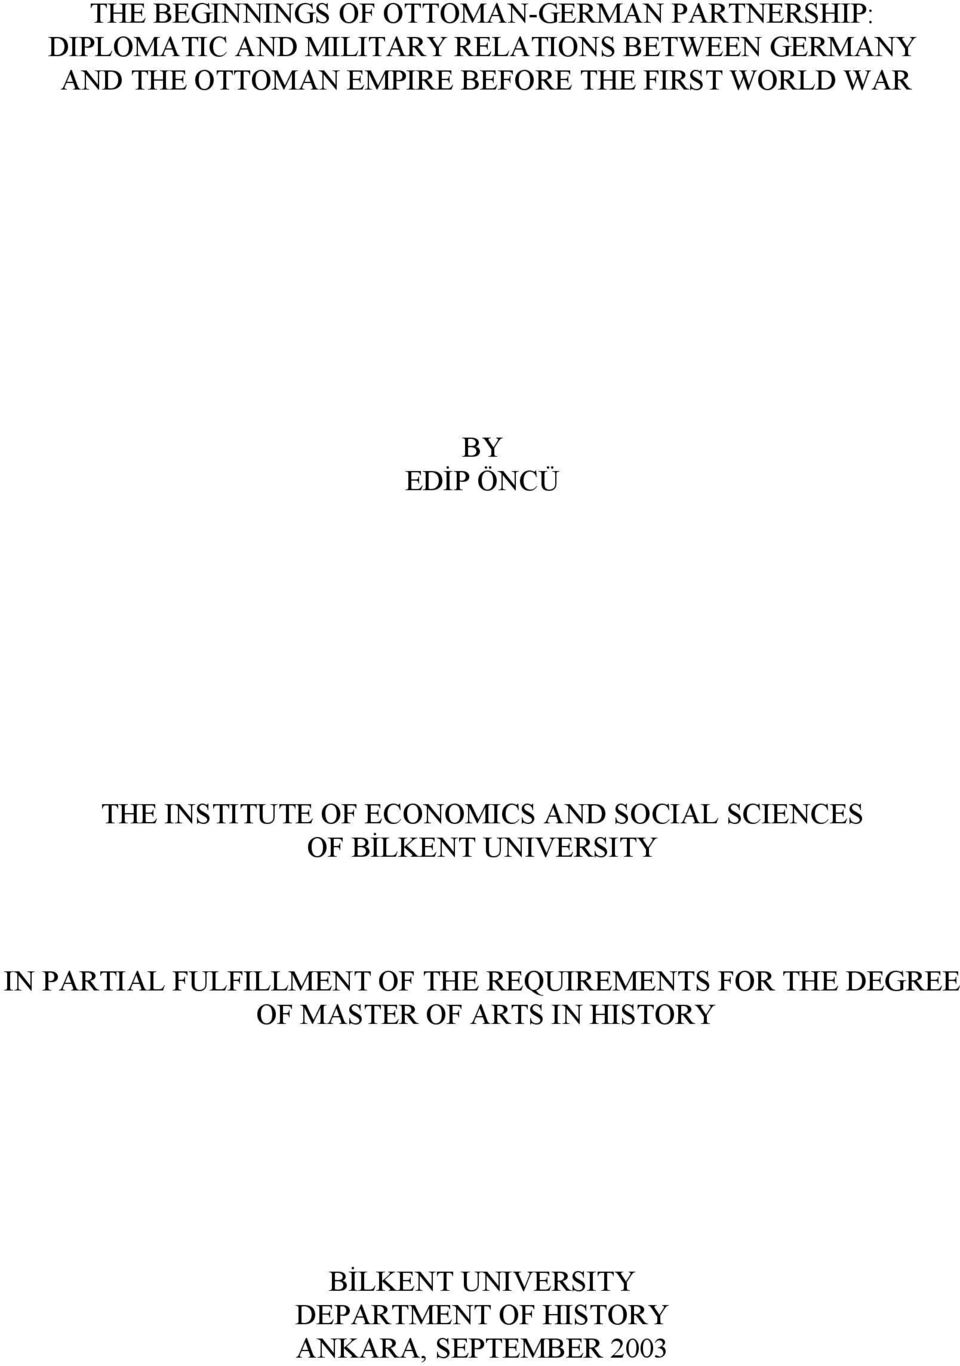 ECONOMICS AND SOCIAL SCIENCES OF BİLKENT UNIVERSITY IN PARTIAL FULFILLMENT OF THE REQUIREMENTS